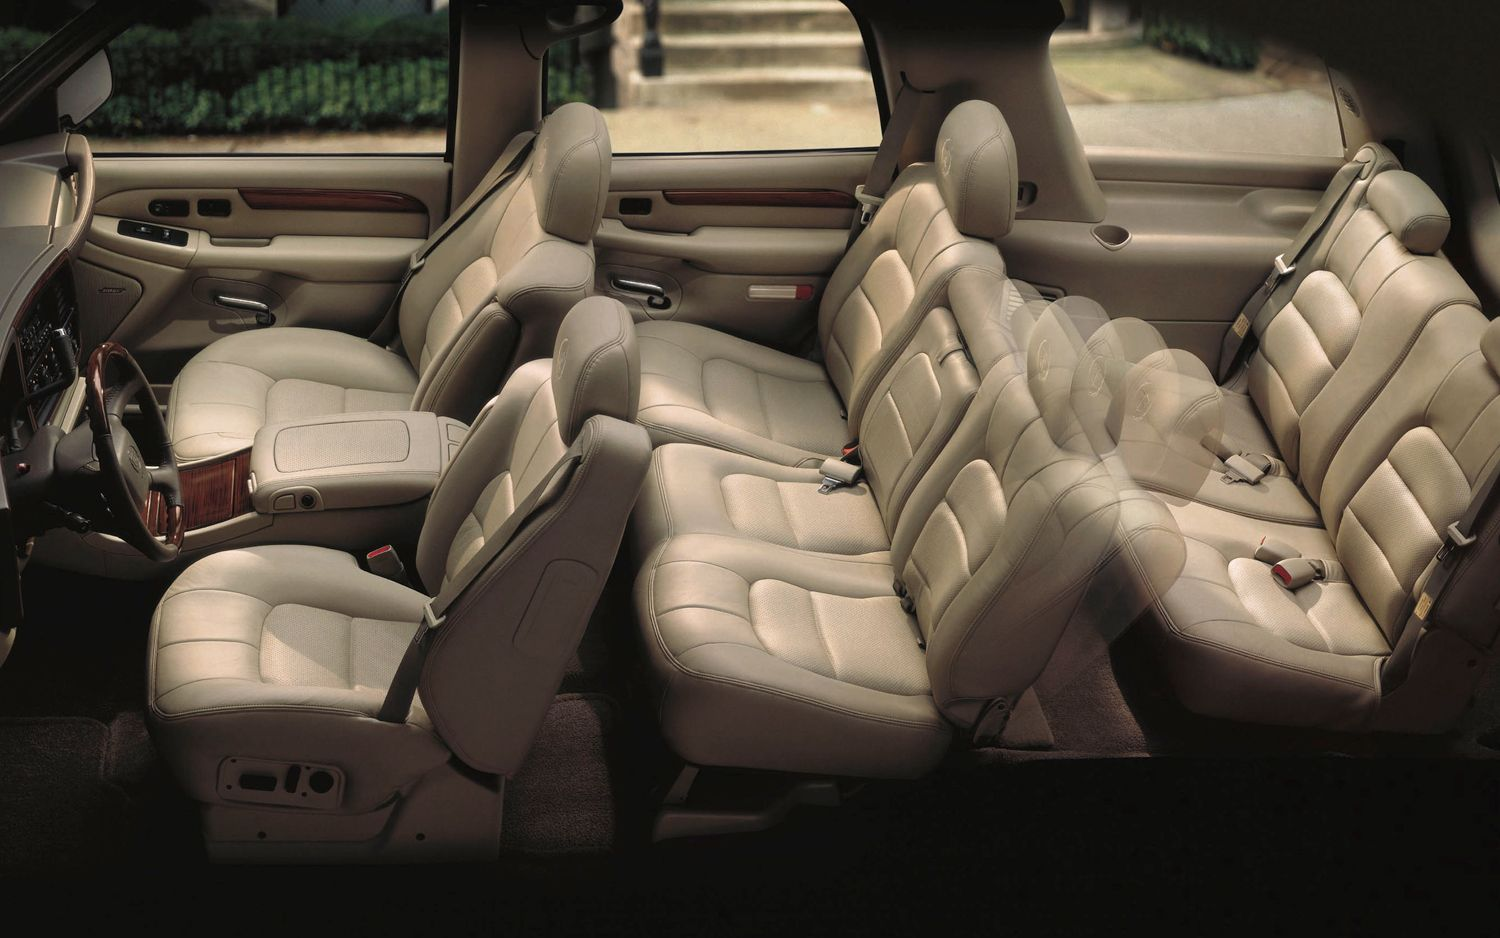 Cadillac Escalade Interior | OUR FLEET | Pinterest | Cadillac ...